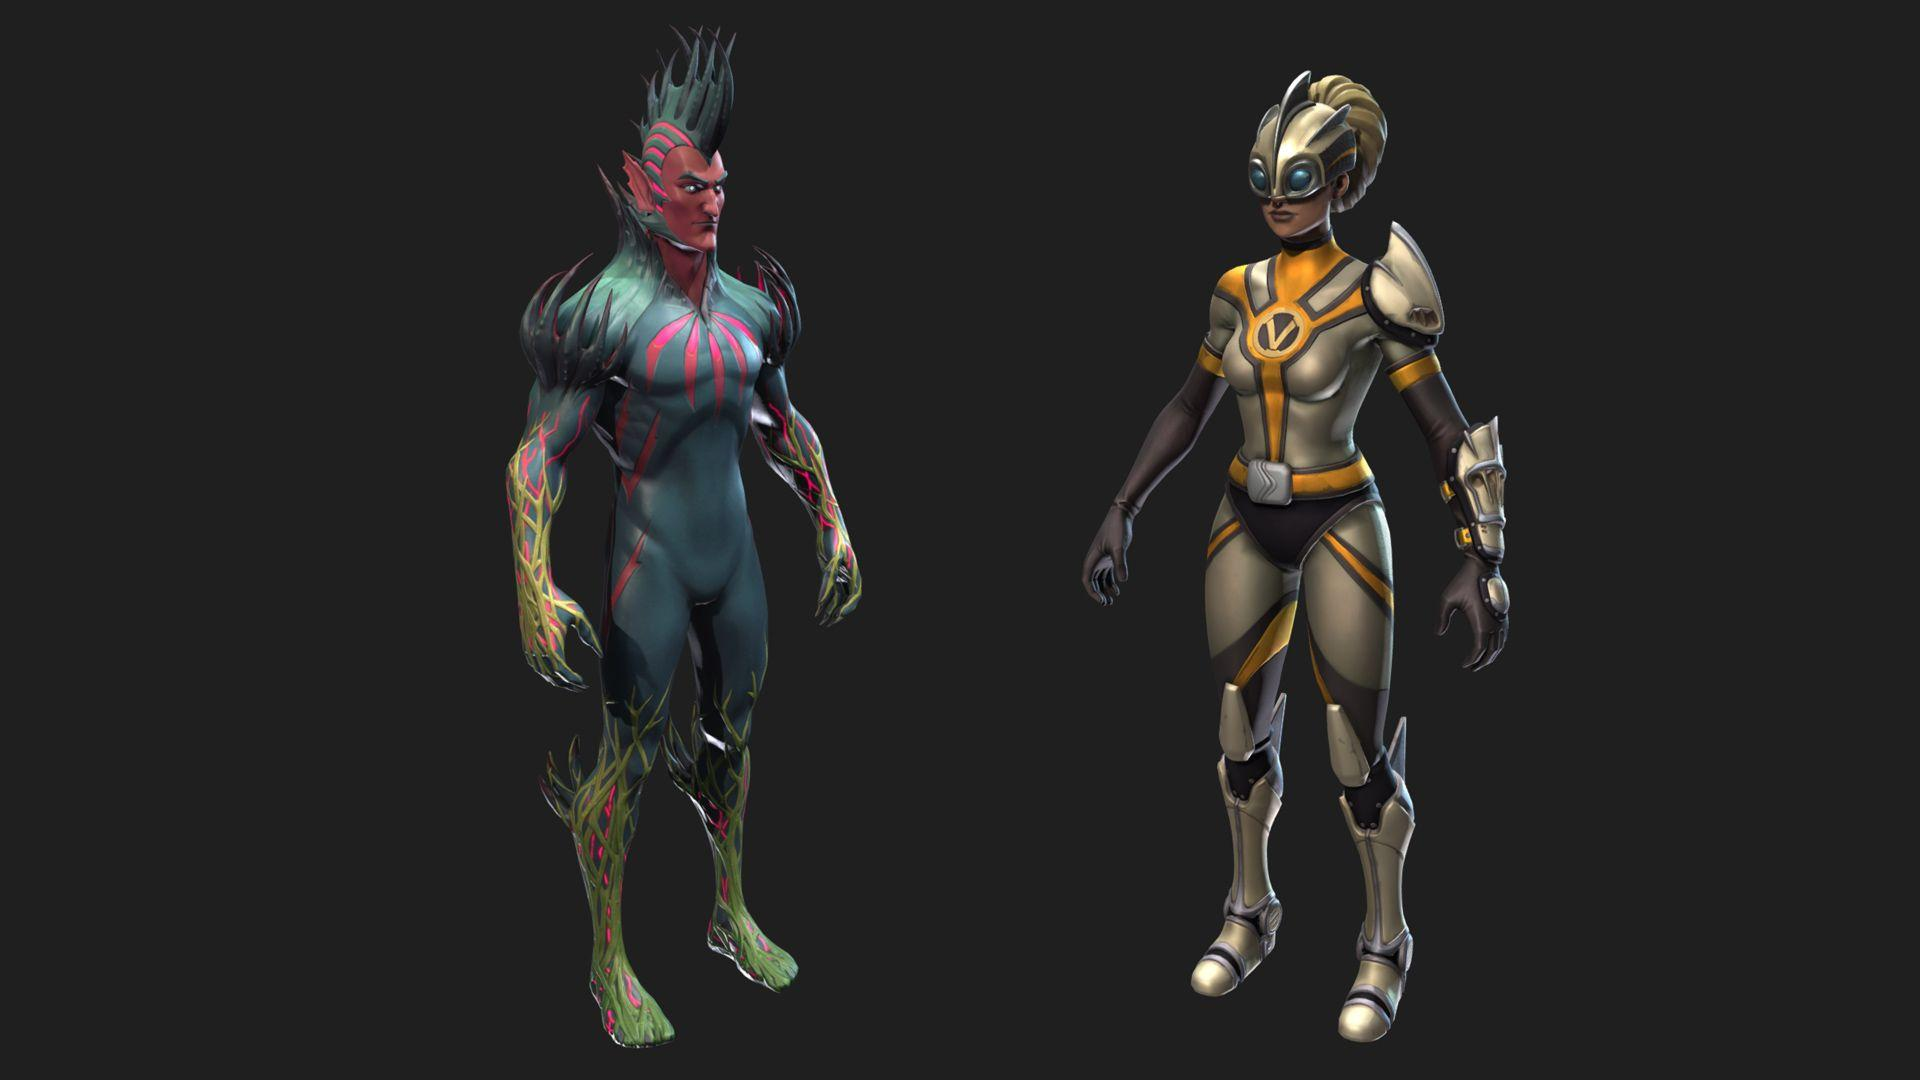 3D models for the upcoming skins found in Patch v4.3.0